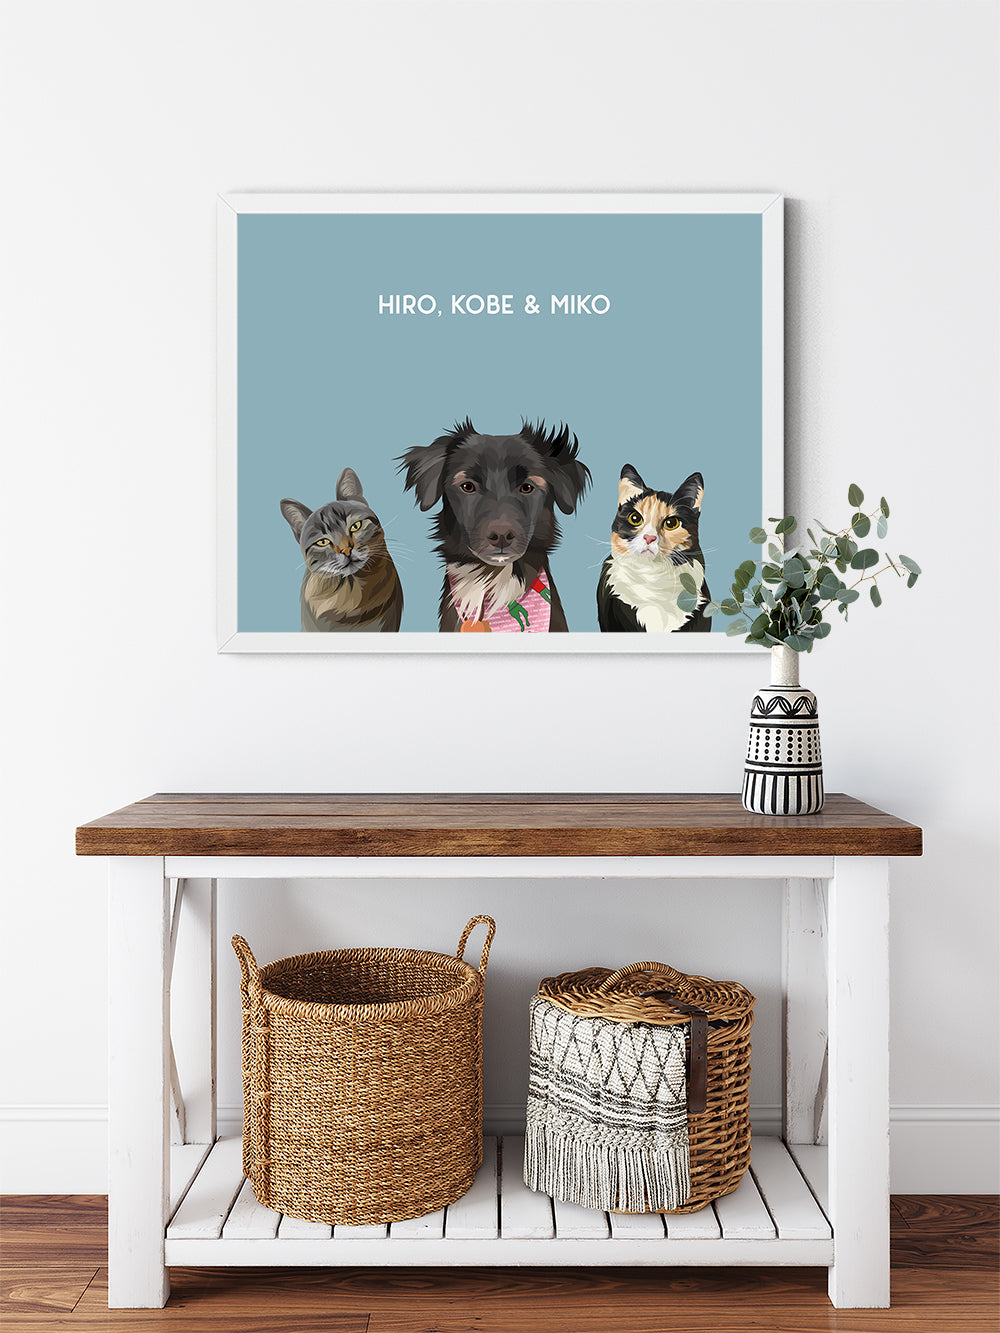 Trio custom framed pet portrait of a cat, dog and cat on ocean blue background with white frame. Personalized name of cat, dog and cat in white font.